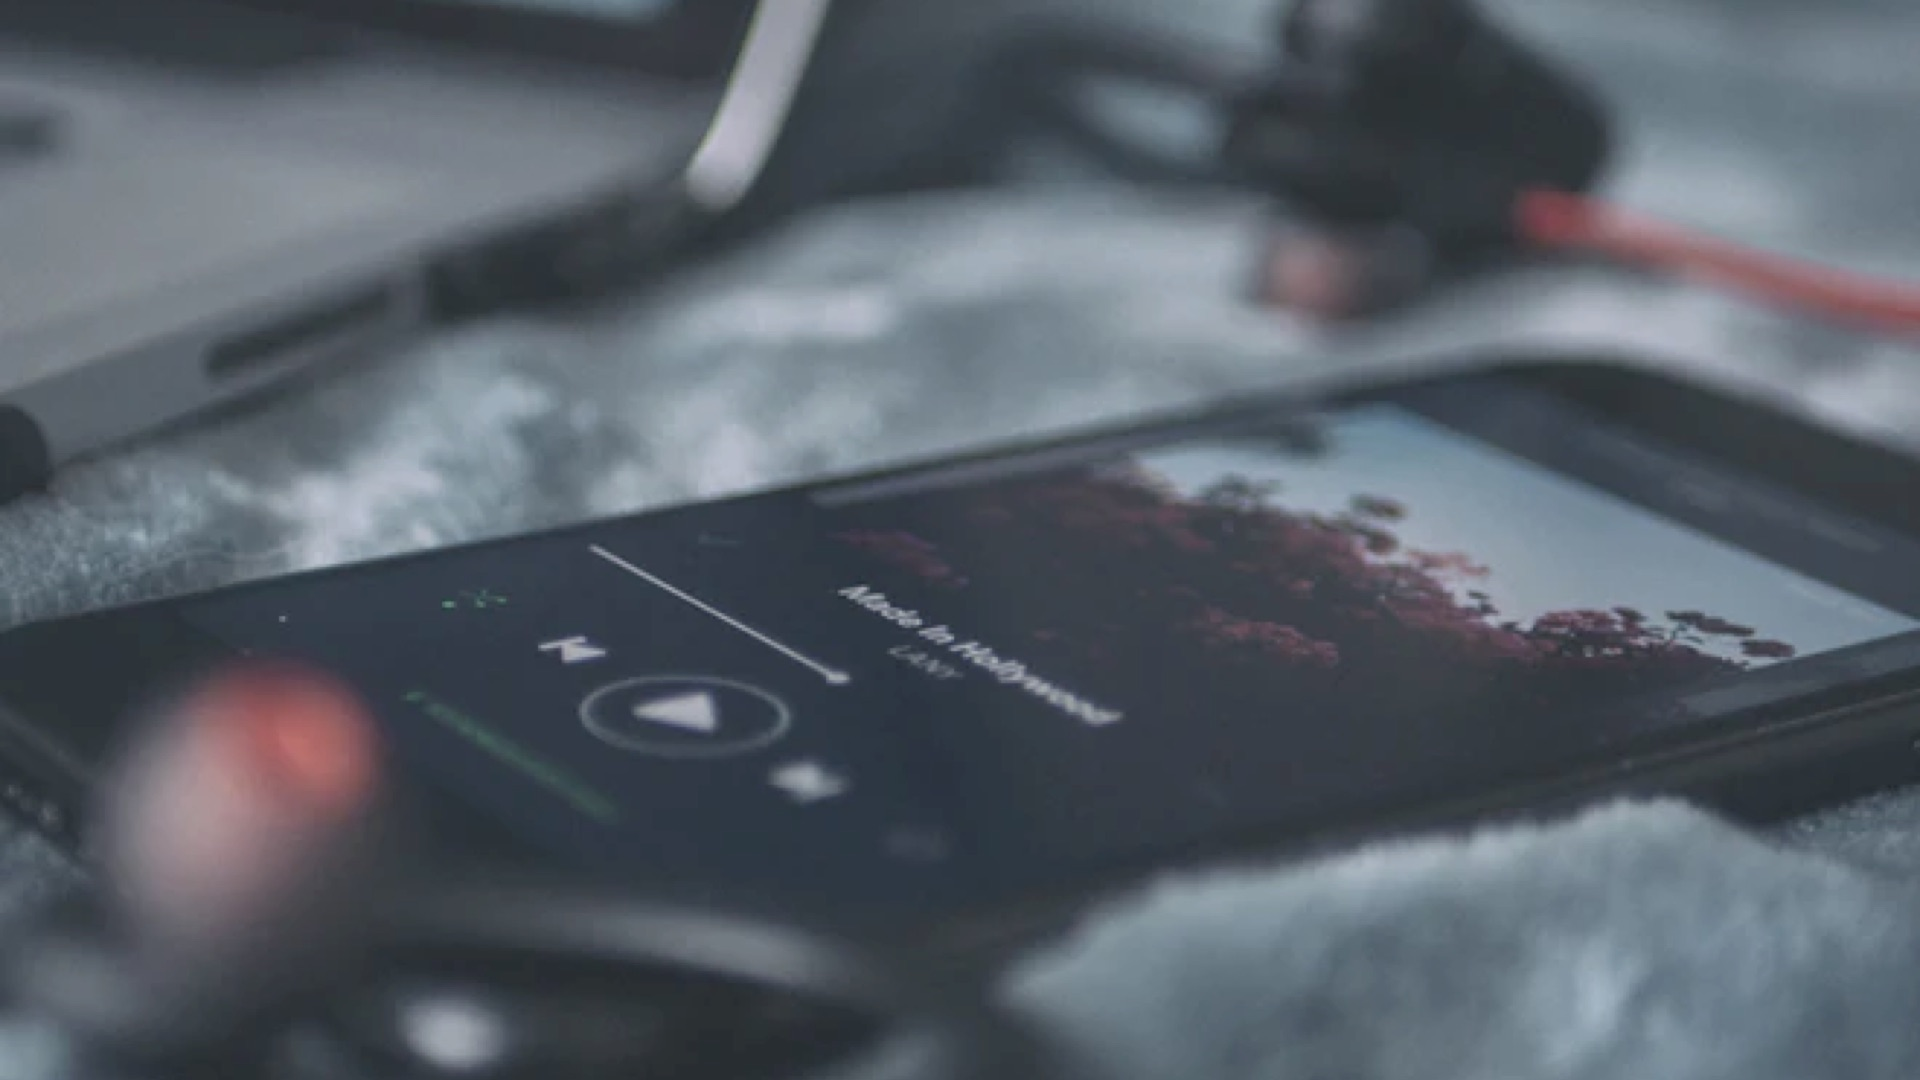 Using the Built-In System Music Player